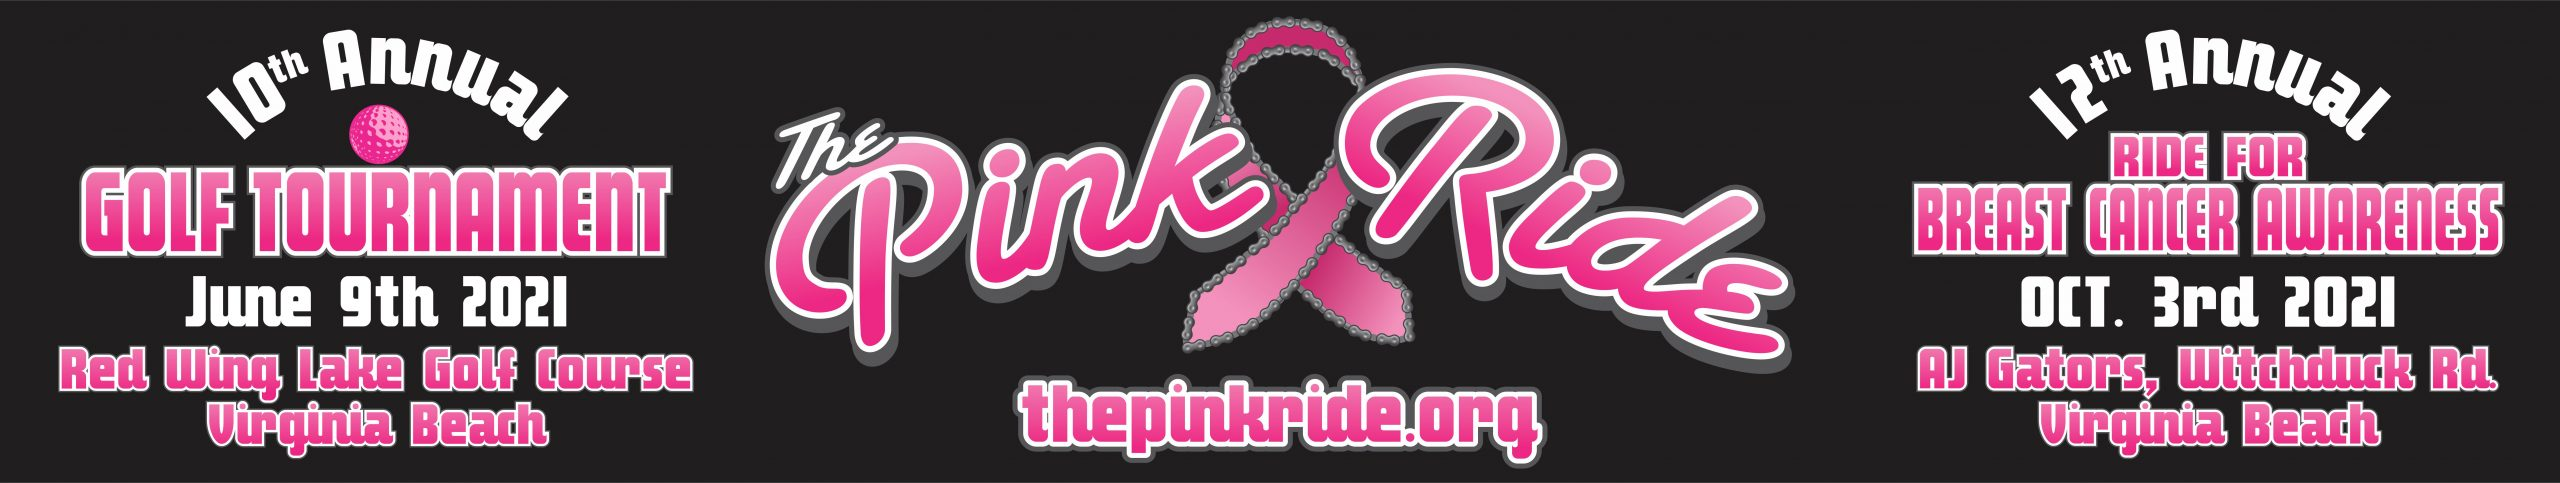 10th Annual Golf Tournament June 9, 2021 Red Wing Lake Golf Course Virginia Beach, 12th Annual Ride for Breast Cancer Awareness October 3, 2021 AJ Gators, Witchduck Rd. Virginia Beach